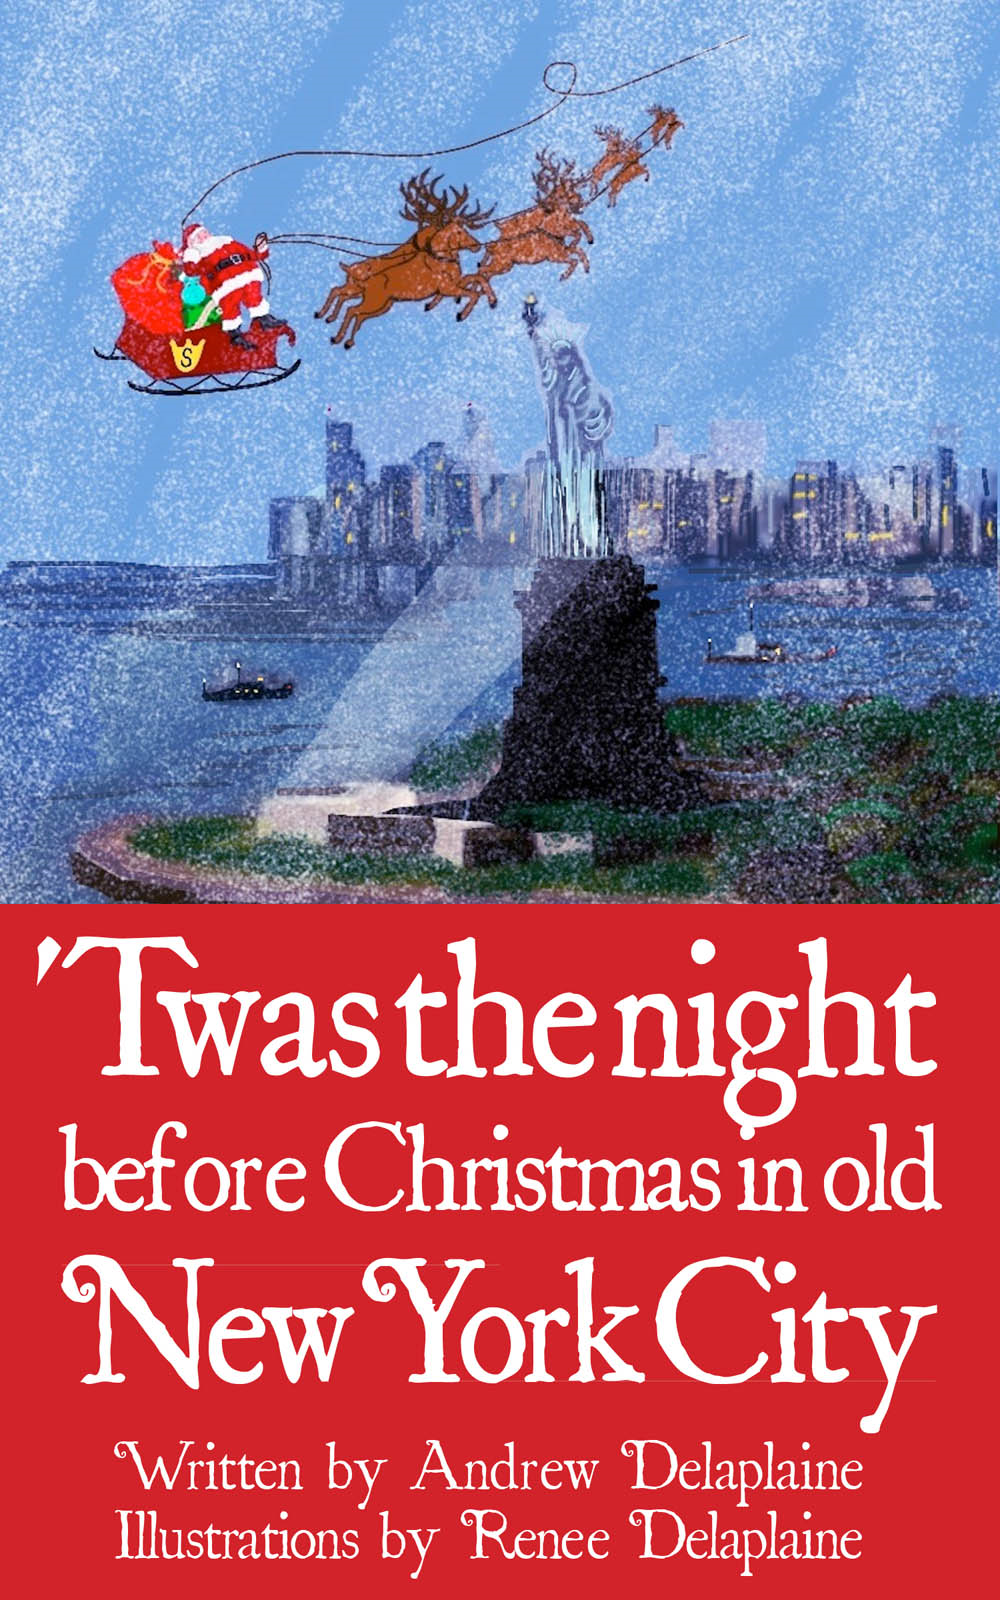 Twas the Night Before Christmas in old New York City